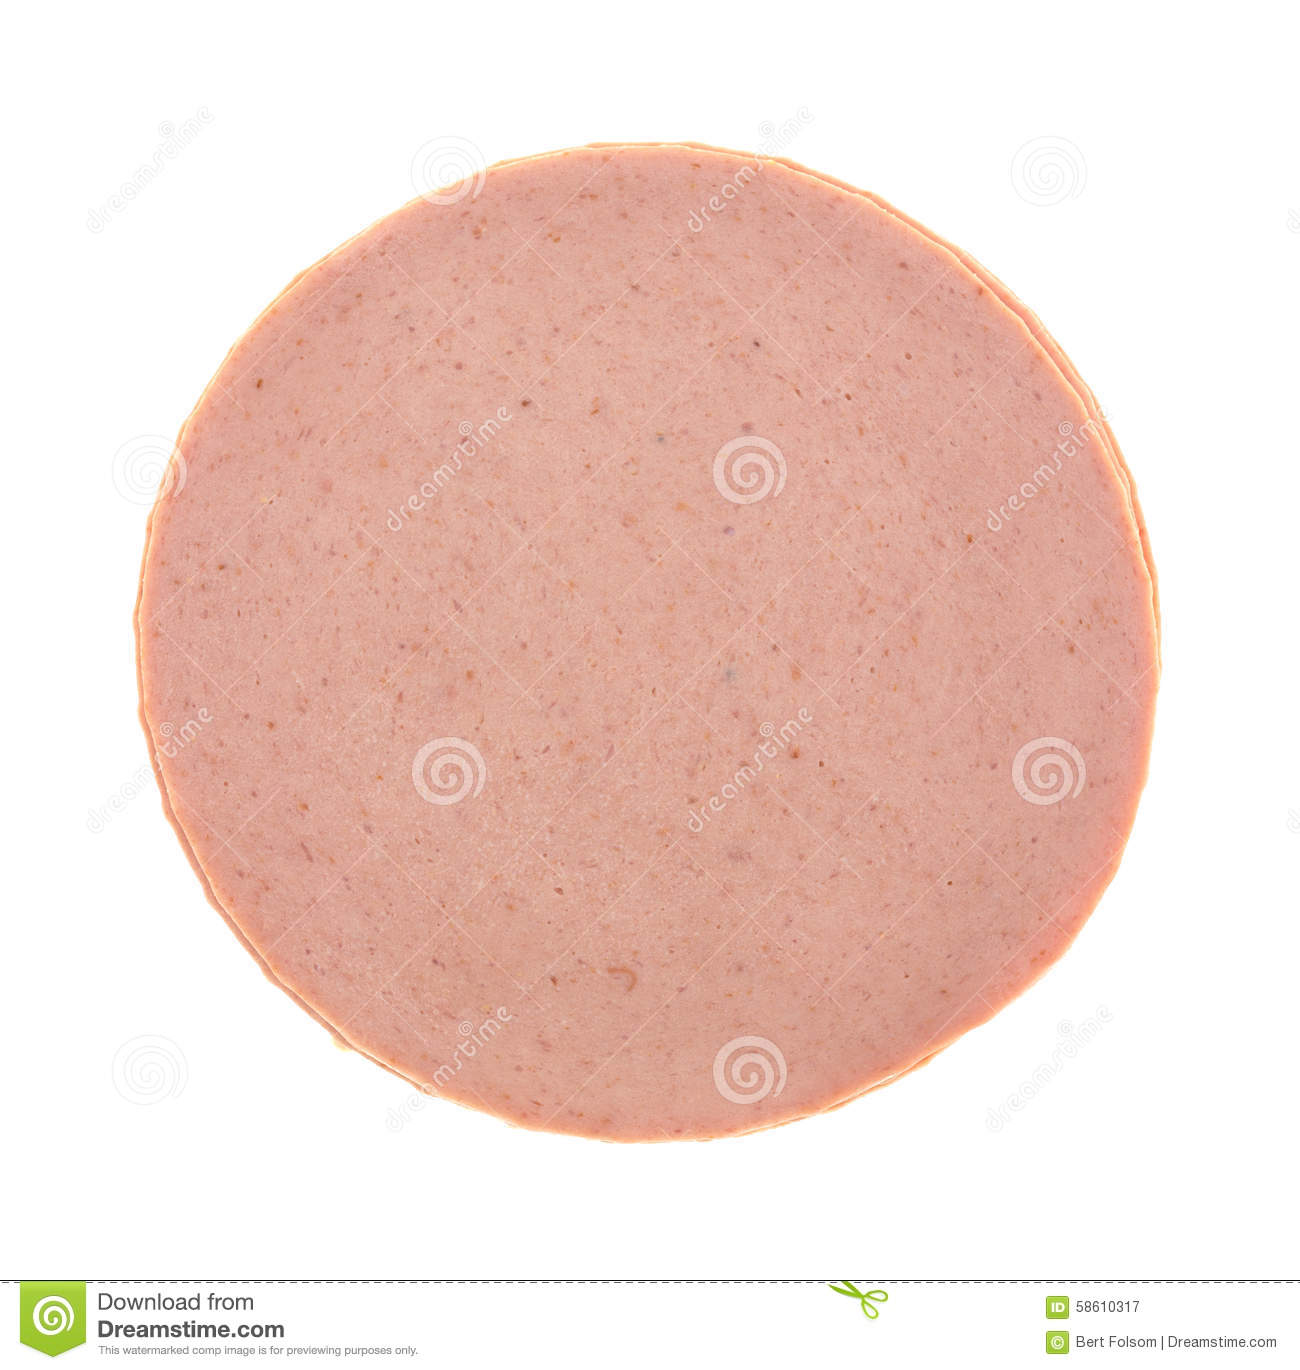 D0 97 D0 B5 D0 BB D1 8C D1 86 furthermore 104927 Luncheon Meats further 100046 Omaha Steaks Introduces Cook In Bag Line Of Roast Products together with Mortadella sandwich meat in addition pany Oscar Mayer Co Inc 911682 Page 1 2. on oscar mayer luncheon meats